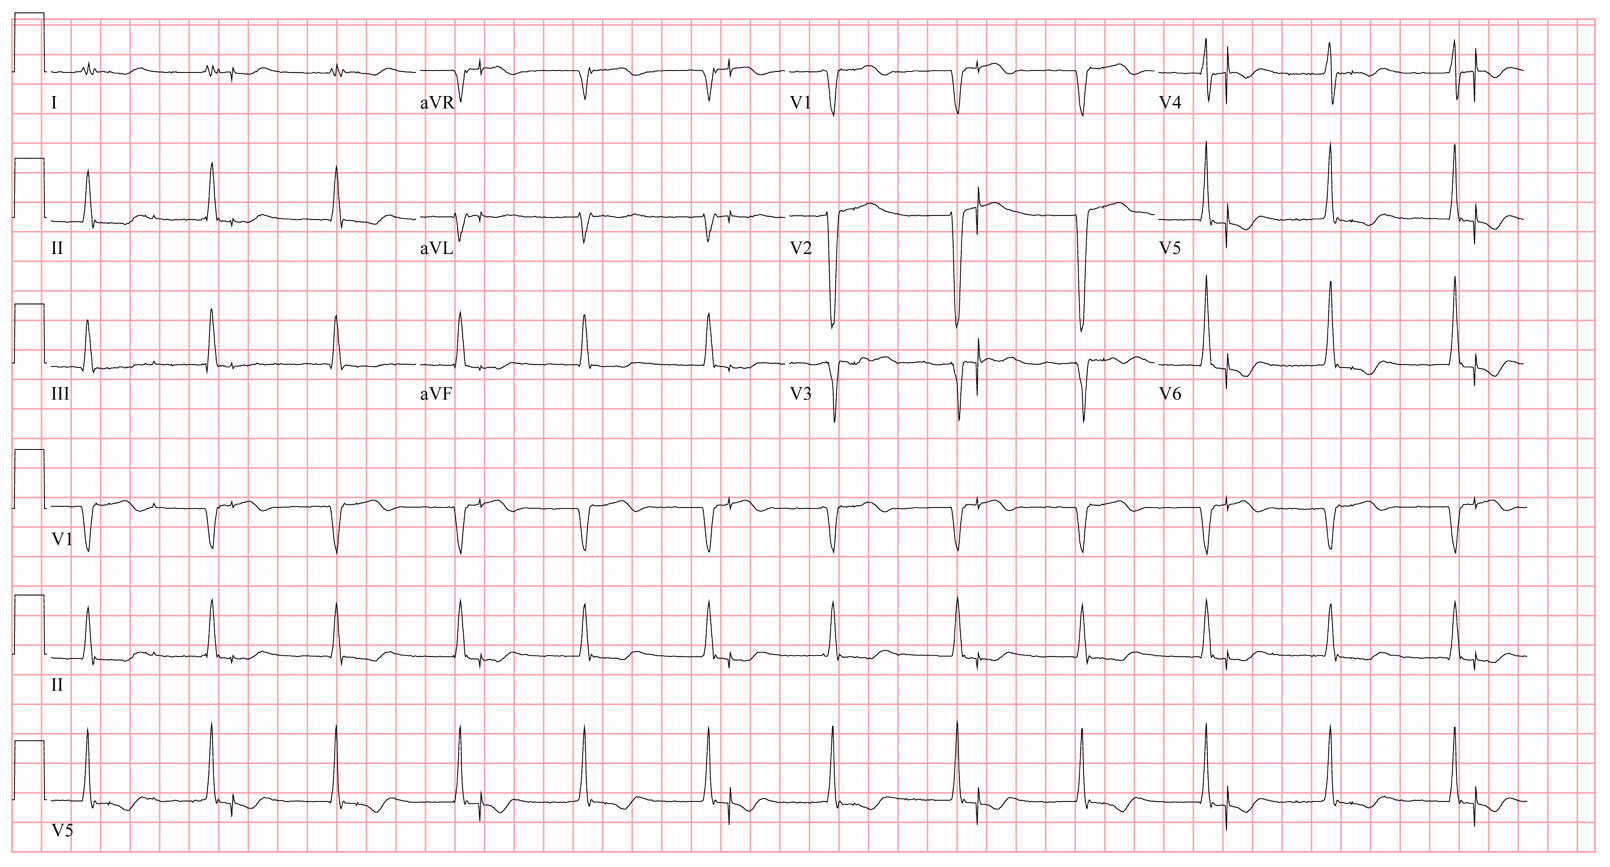 Pacemaker - Single Chamber -Ventricular